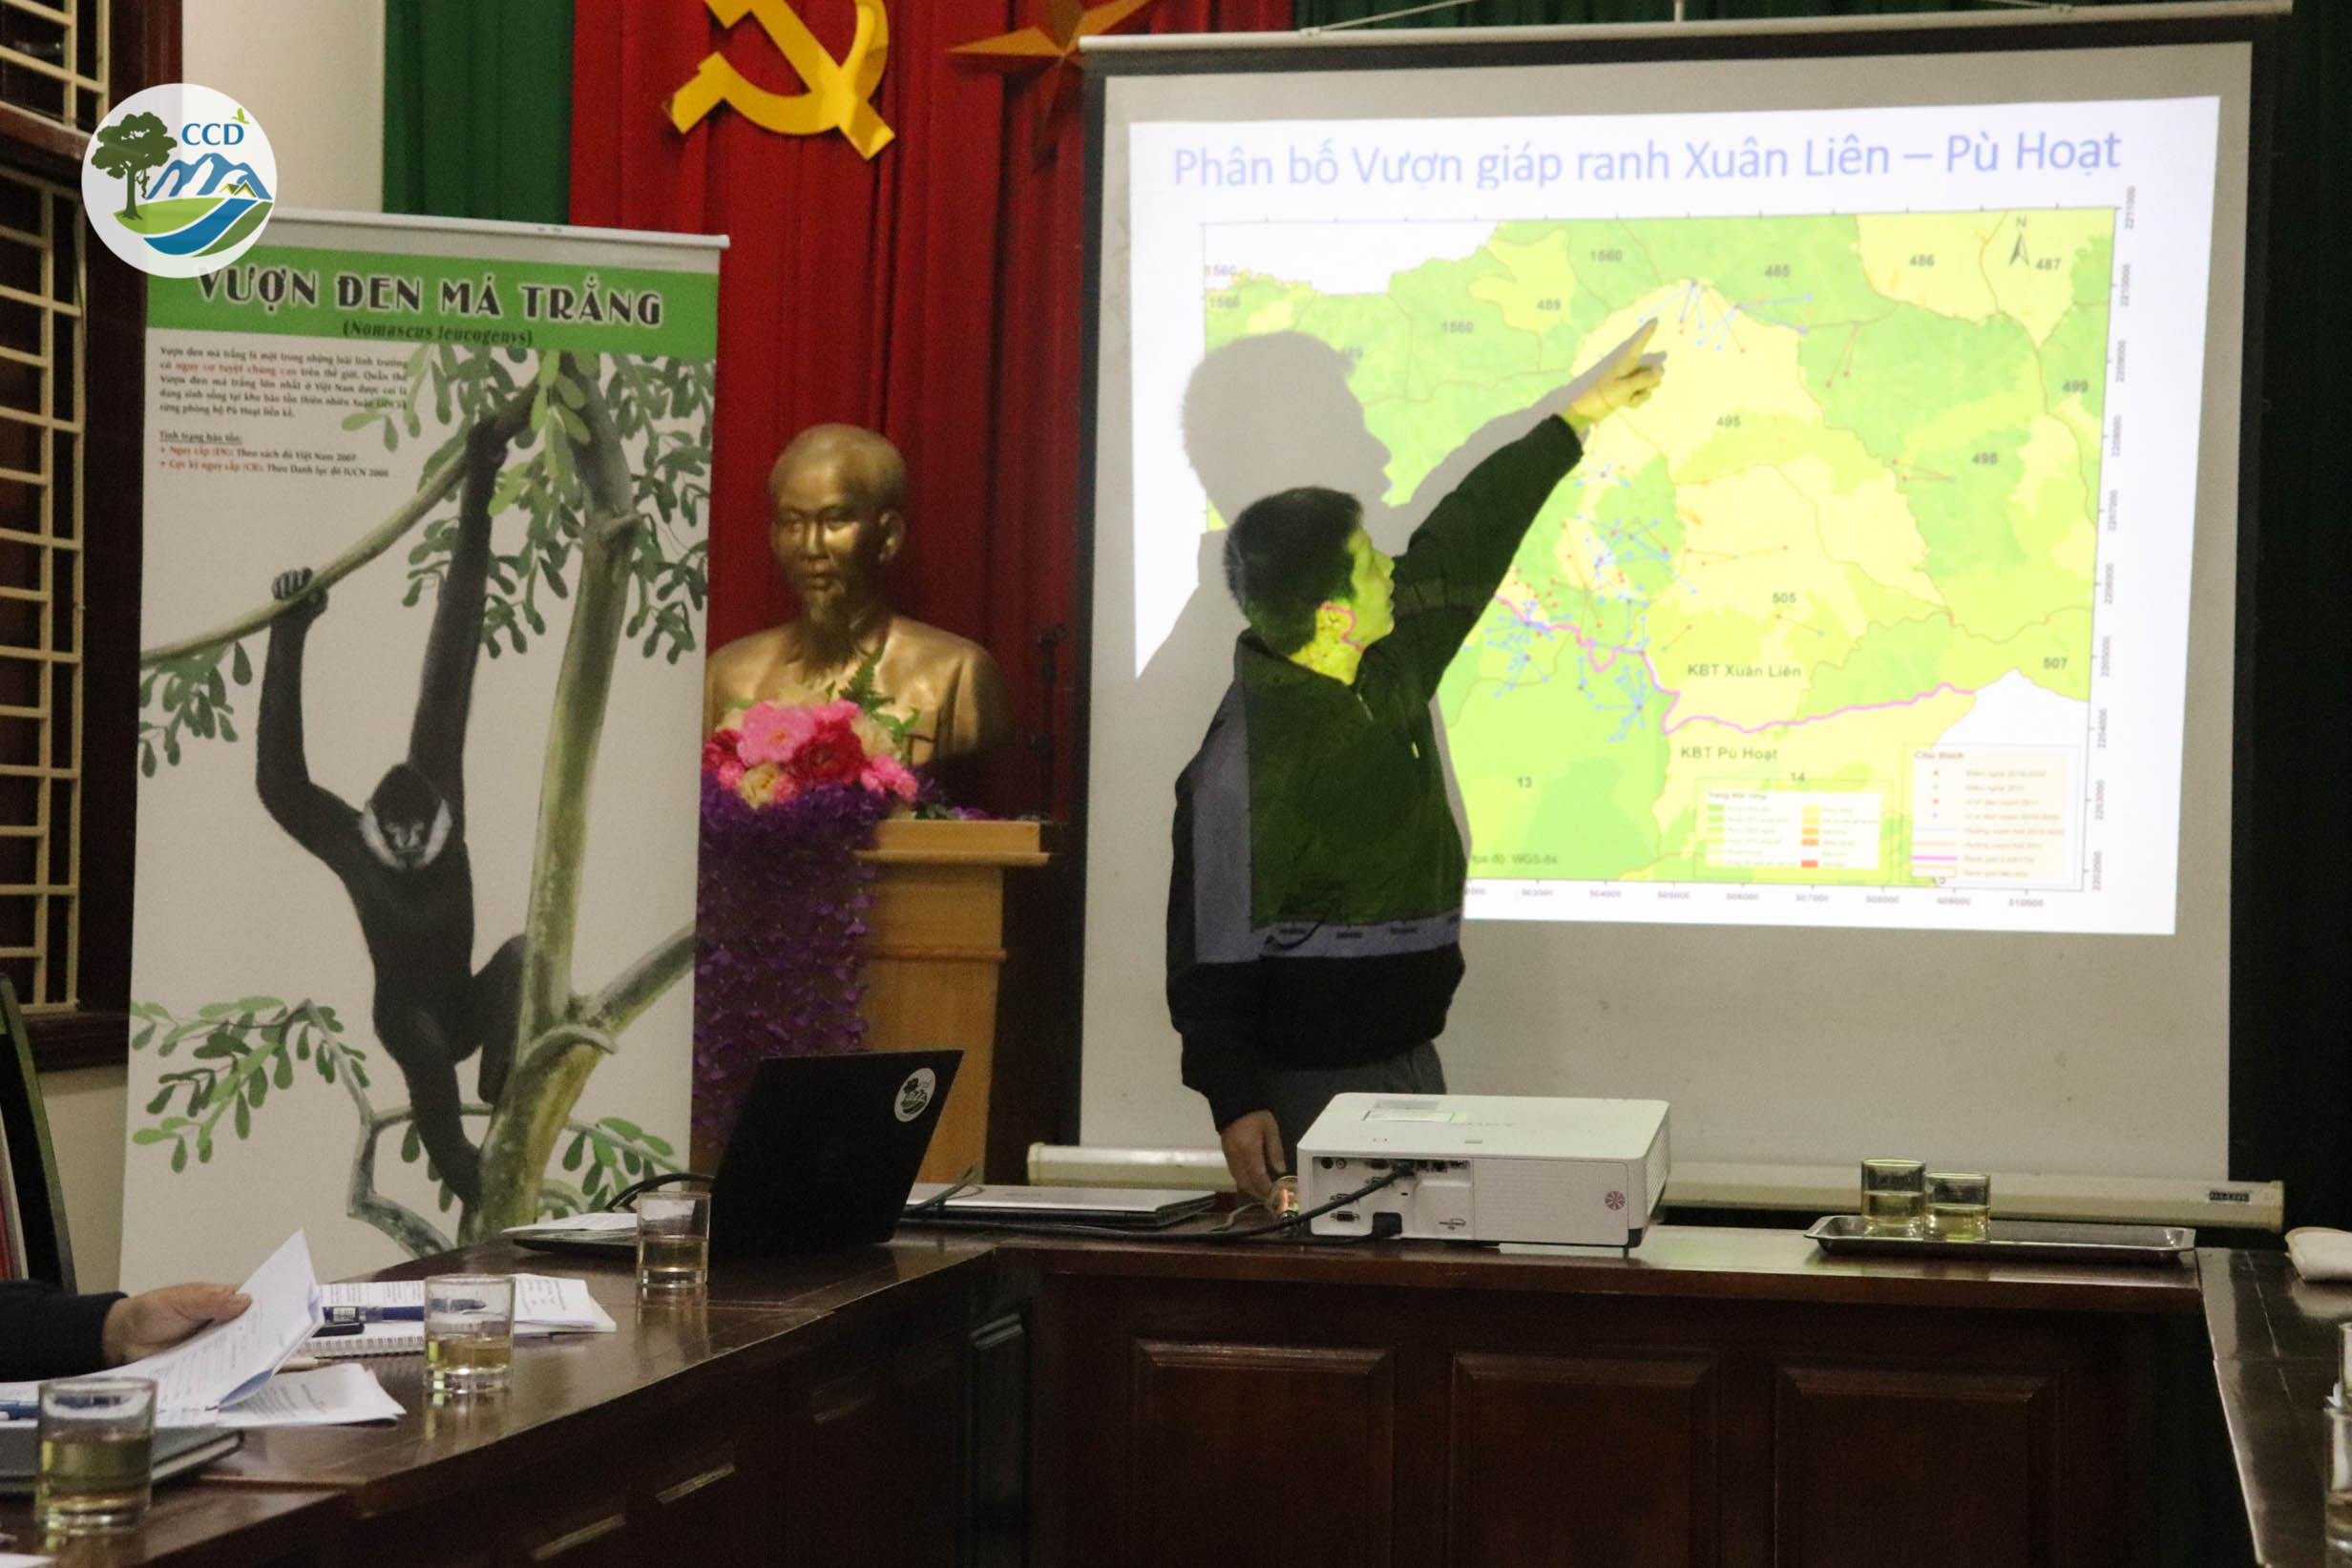 Improving  cooperation for effective conservation of the critically endangered white-cheeked gibbons and endangered wildlife in Xuan Lien - Pu Hoat Conservation landscape